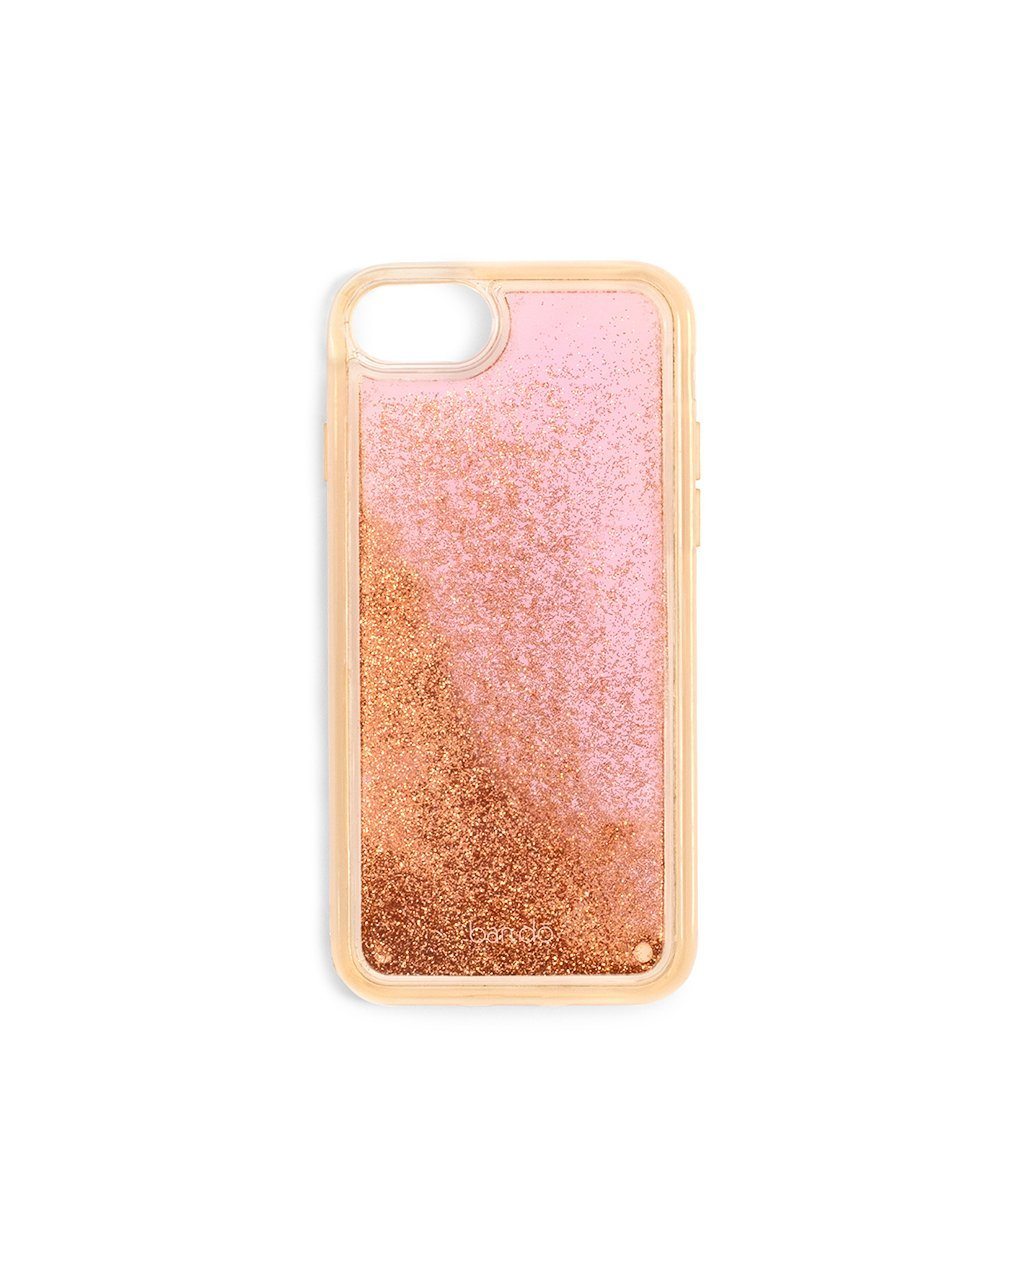 Glitter Bomb iPhone 7 Case - Color Block